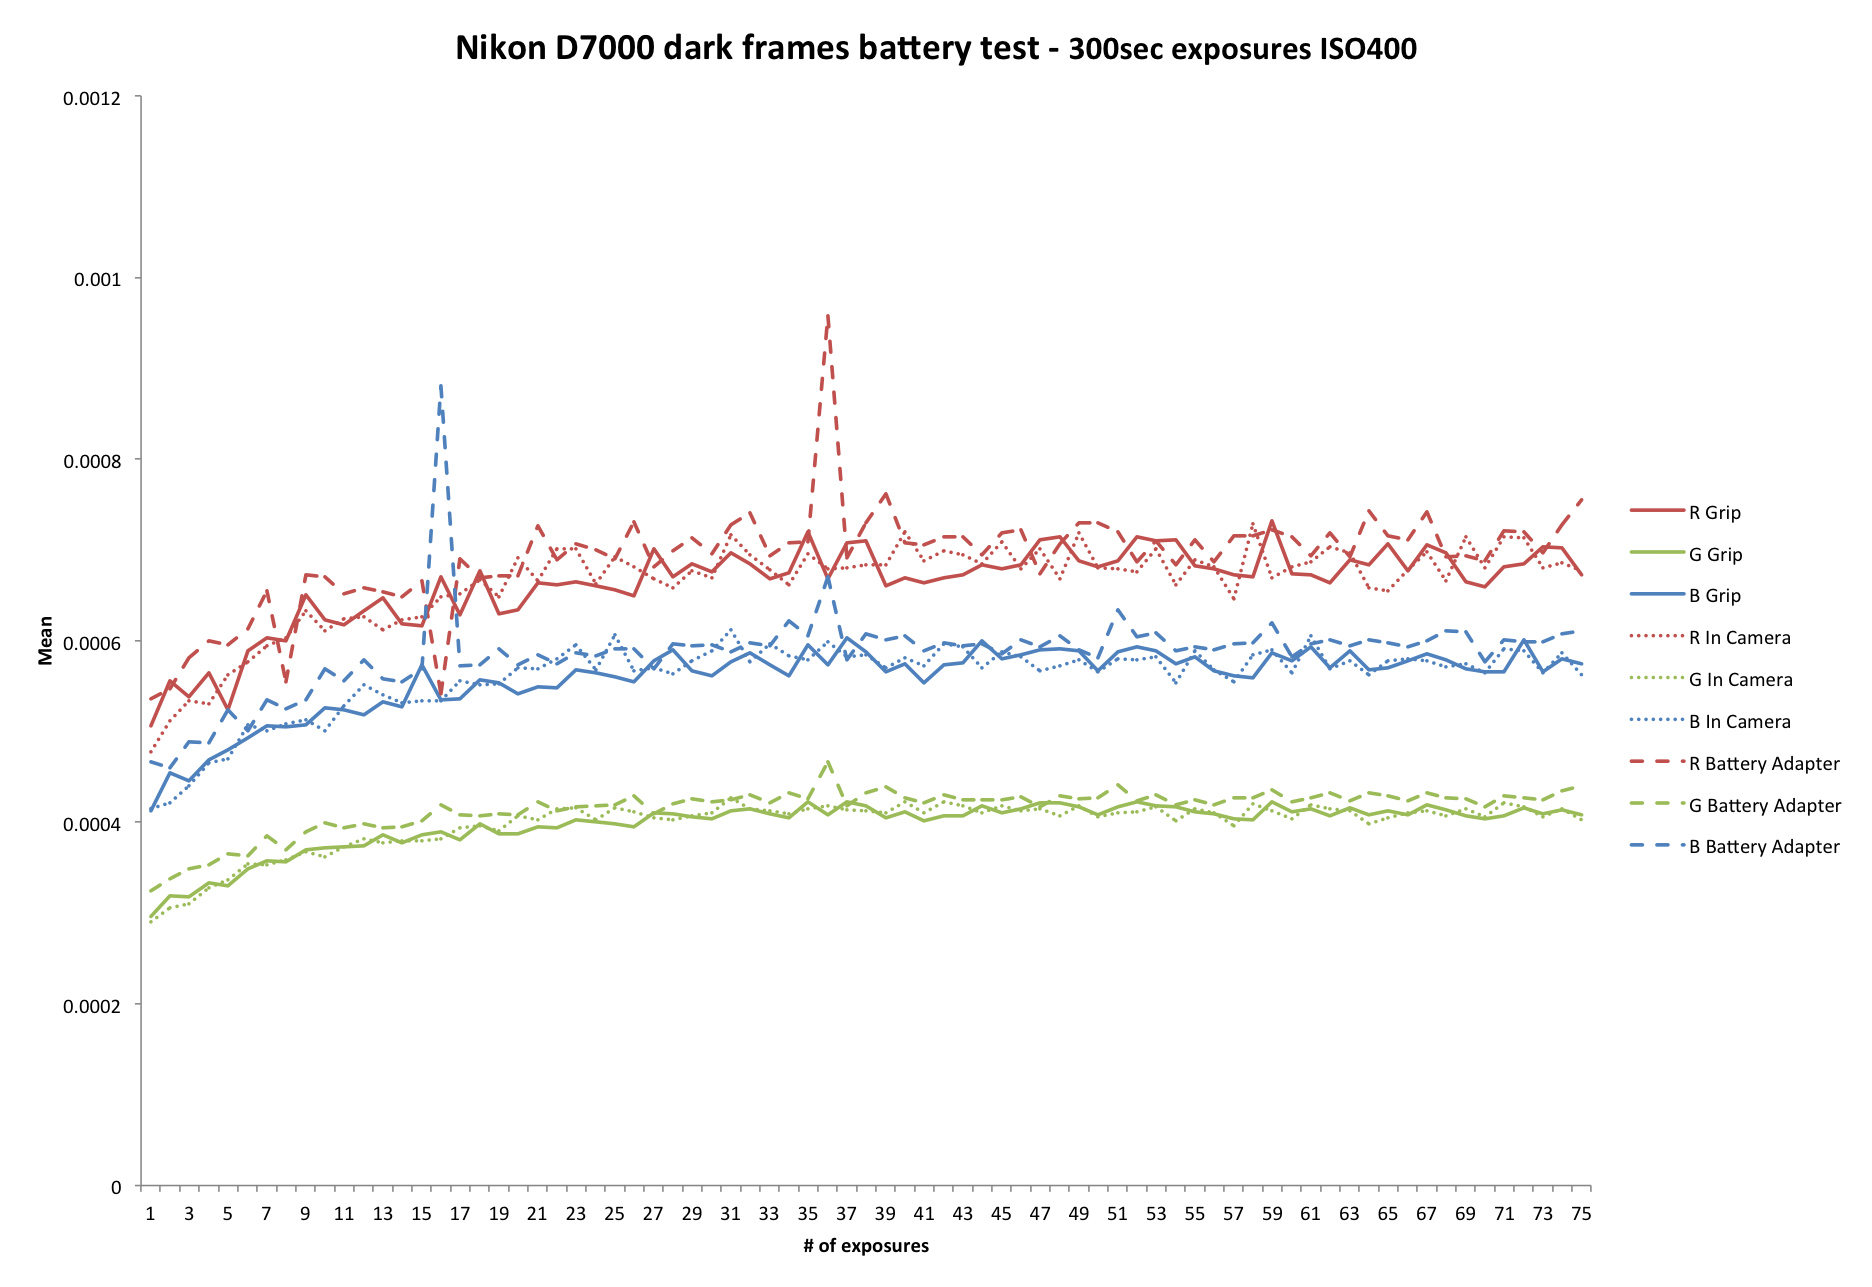 Does a battery in camera add to the thermal noise?